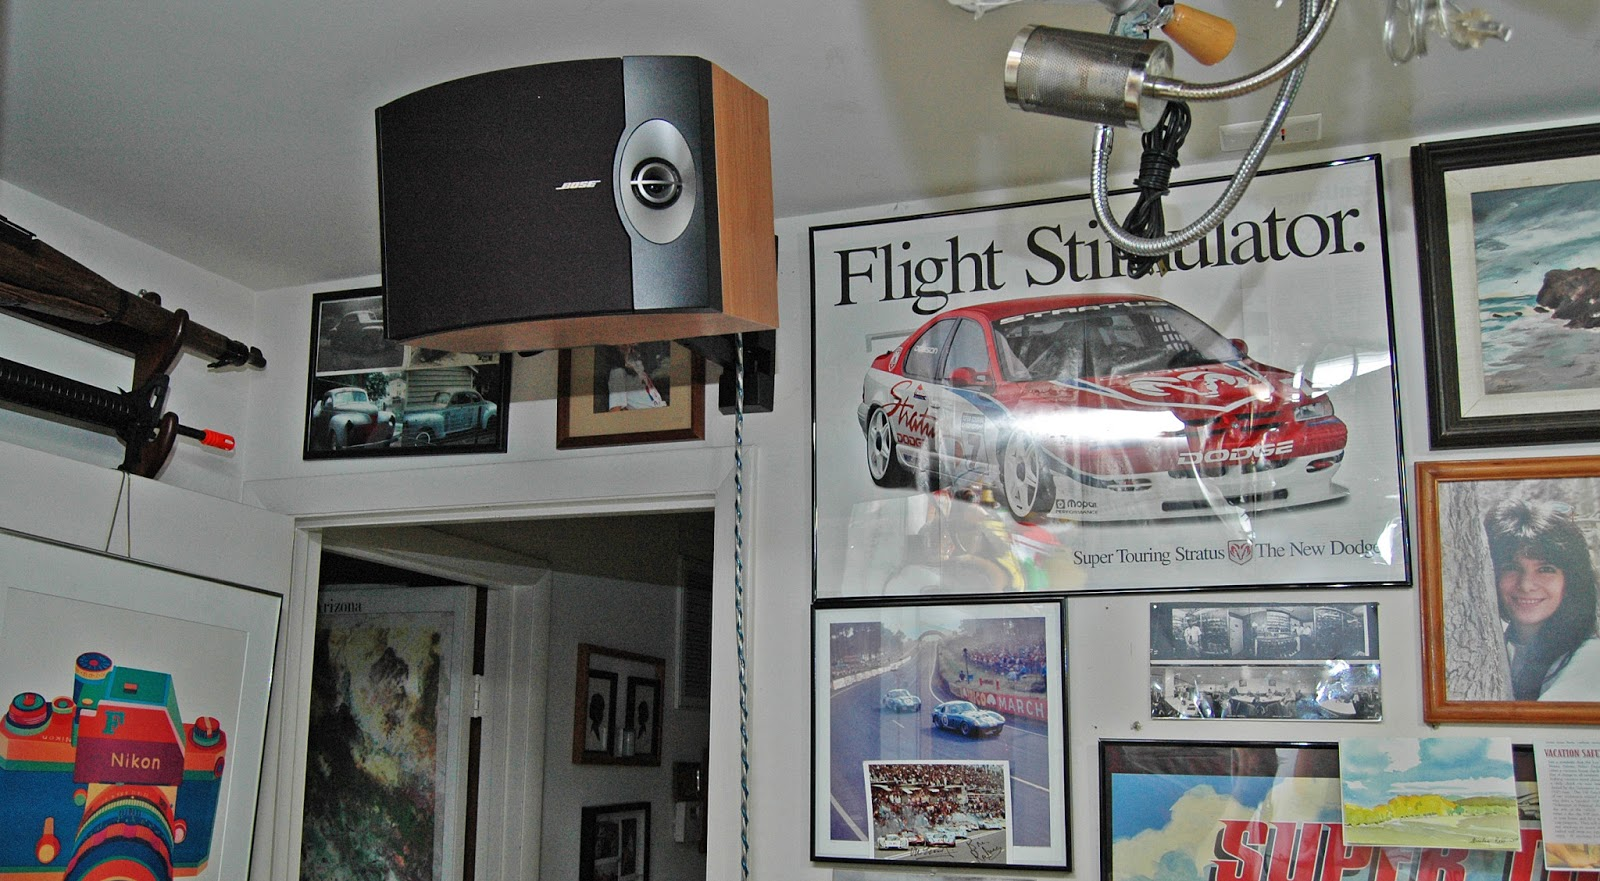 A Great Way To Mount Your Bose 301 Speakers For Excellent